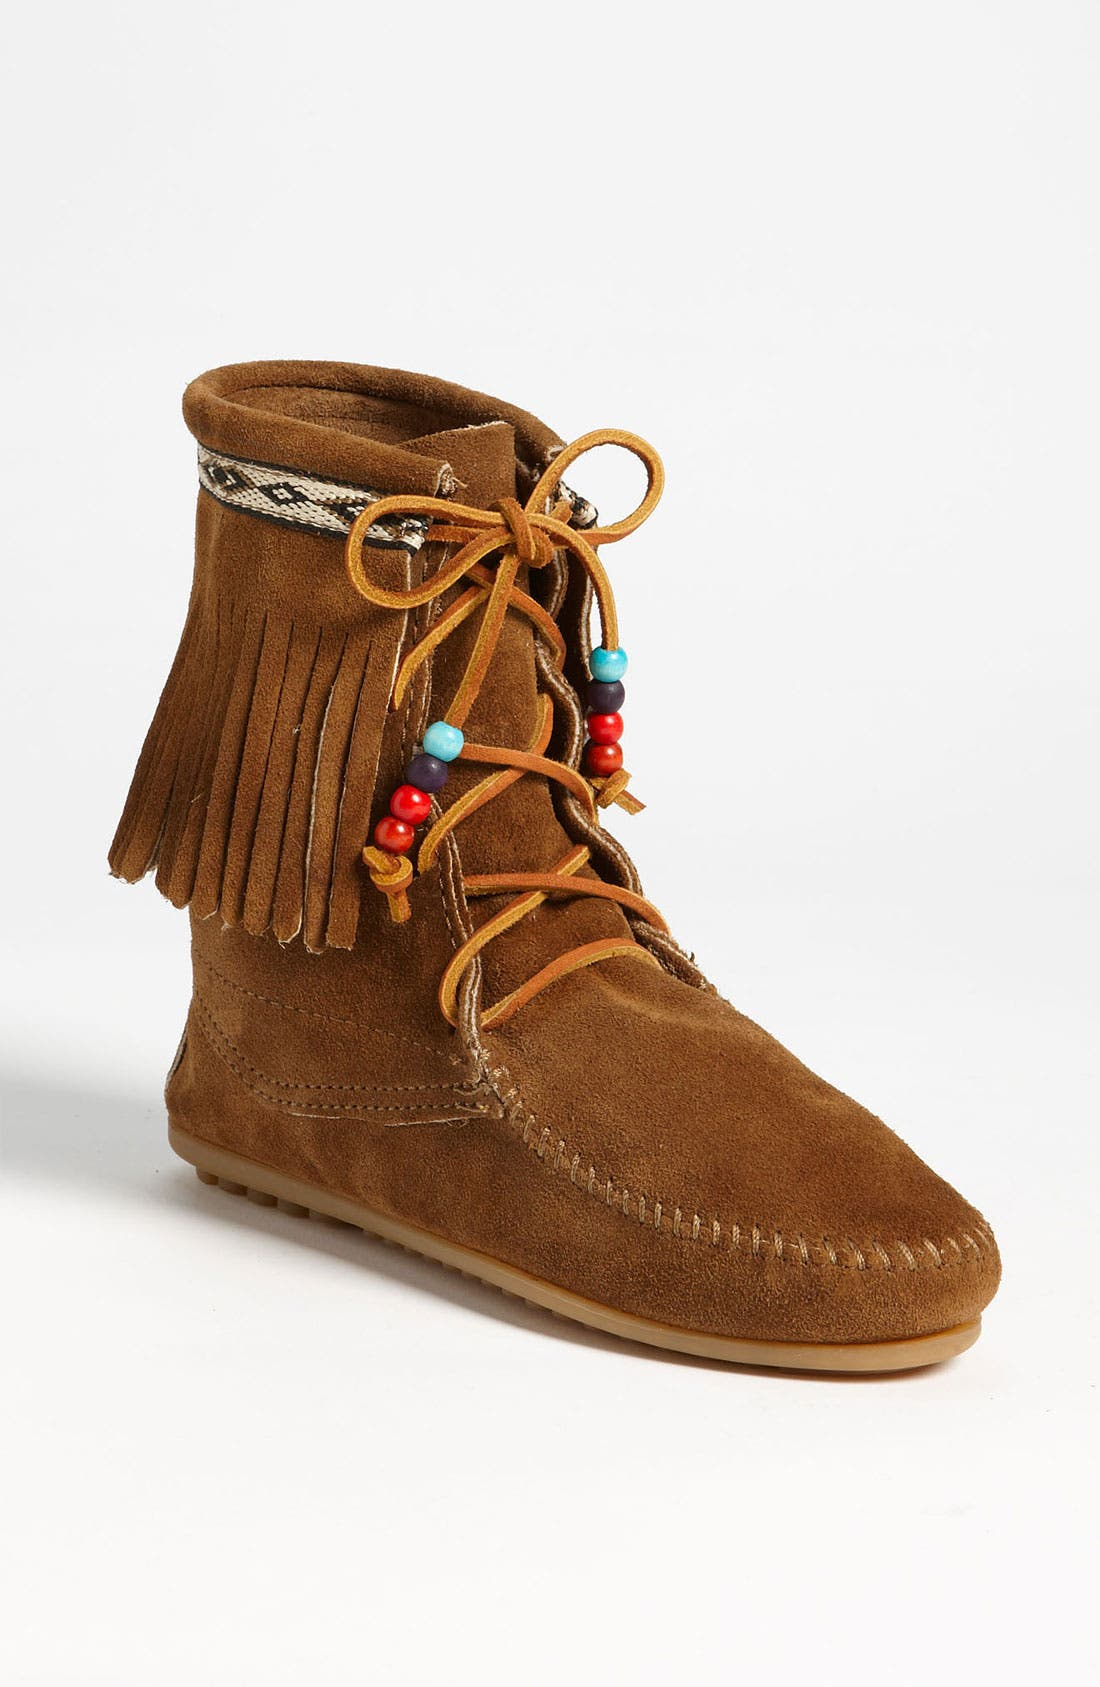 Alternate Image 1 Selected - Minnetonka 'Beaded Tramper' Boot